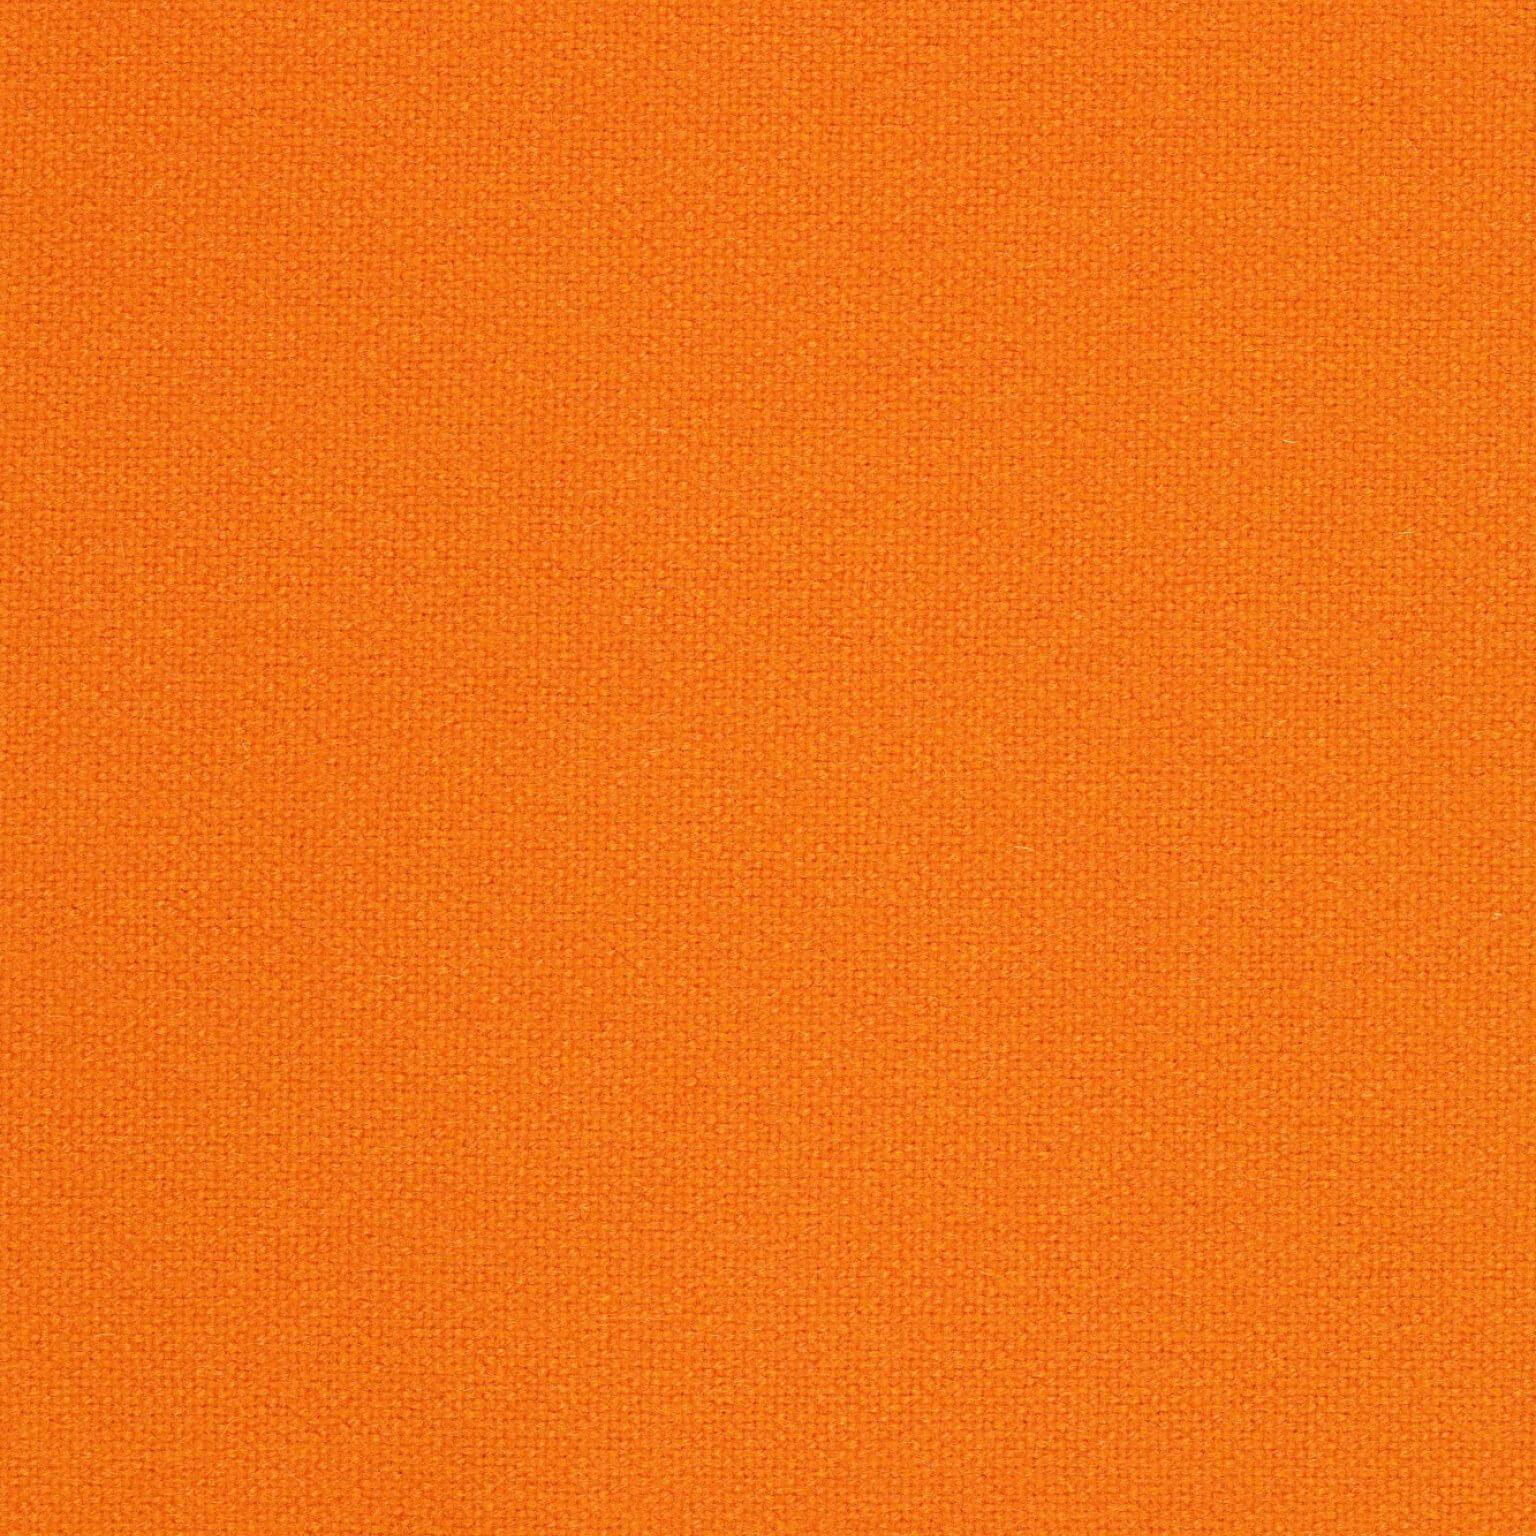 Artifort Orange Slice Kvadrat stof Tonus 0125 detail